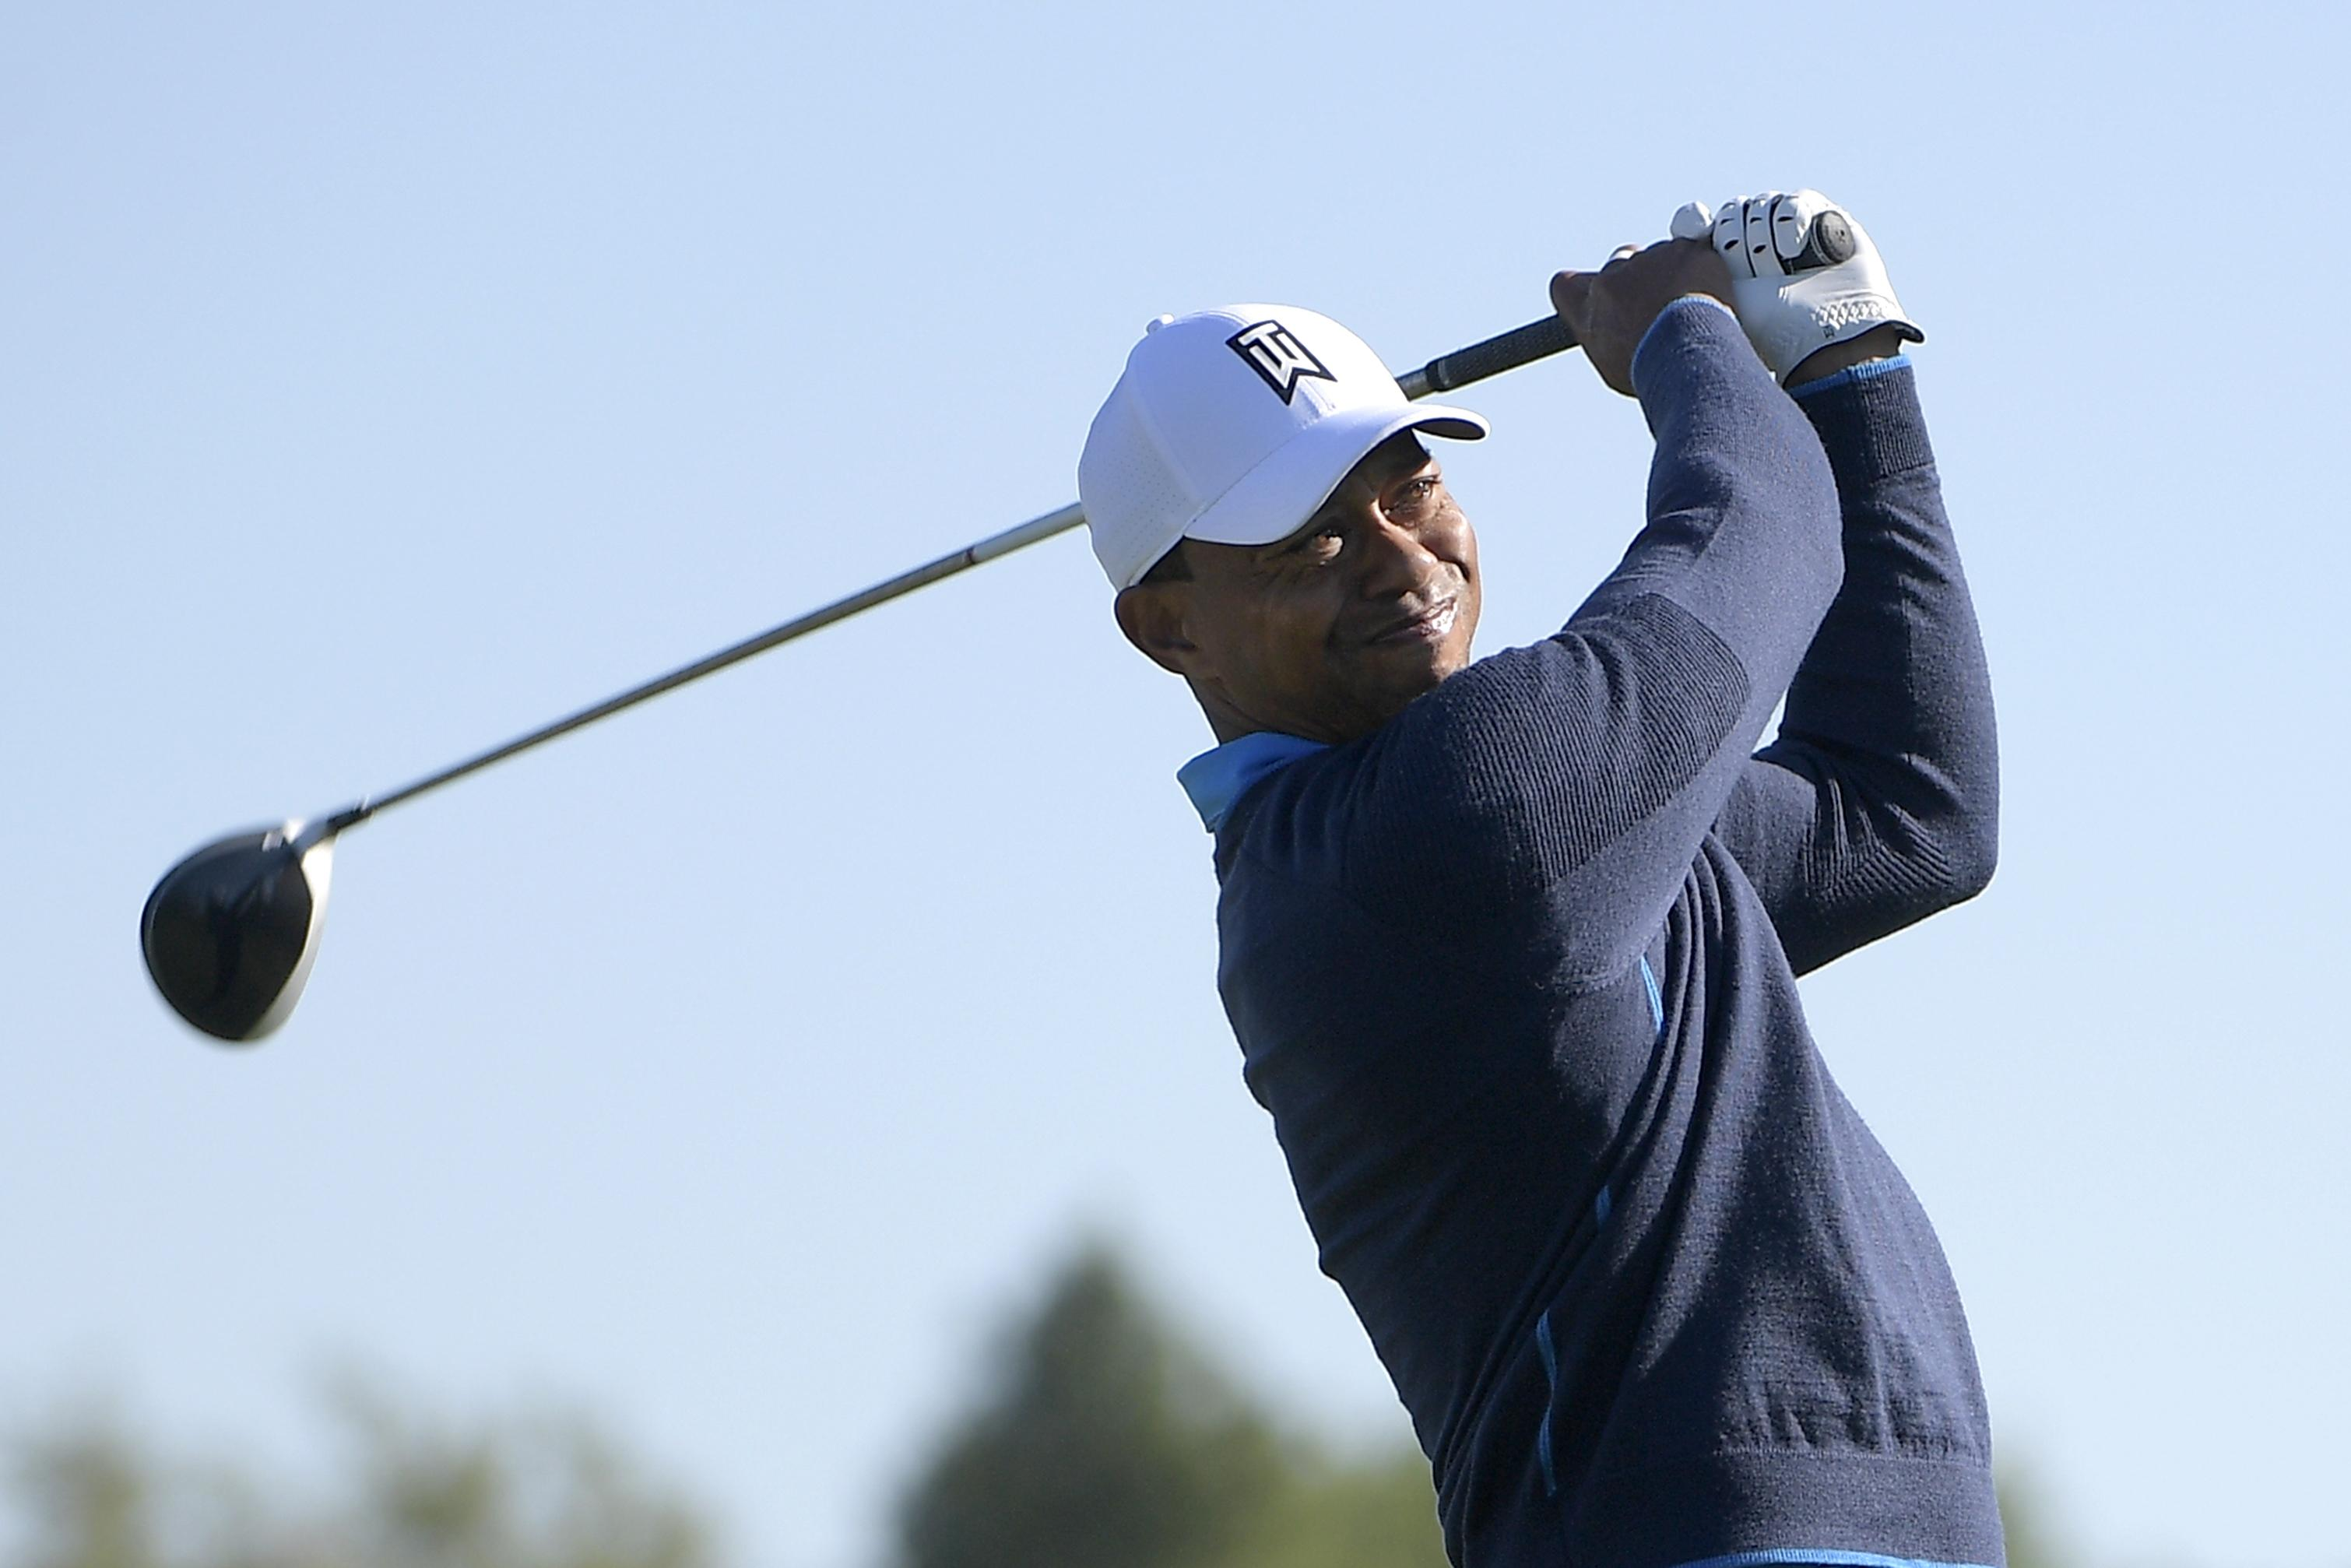 Tiger Woods is playing his best golf for years after his injury woes